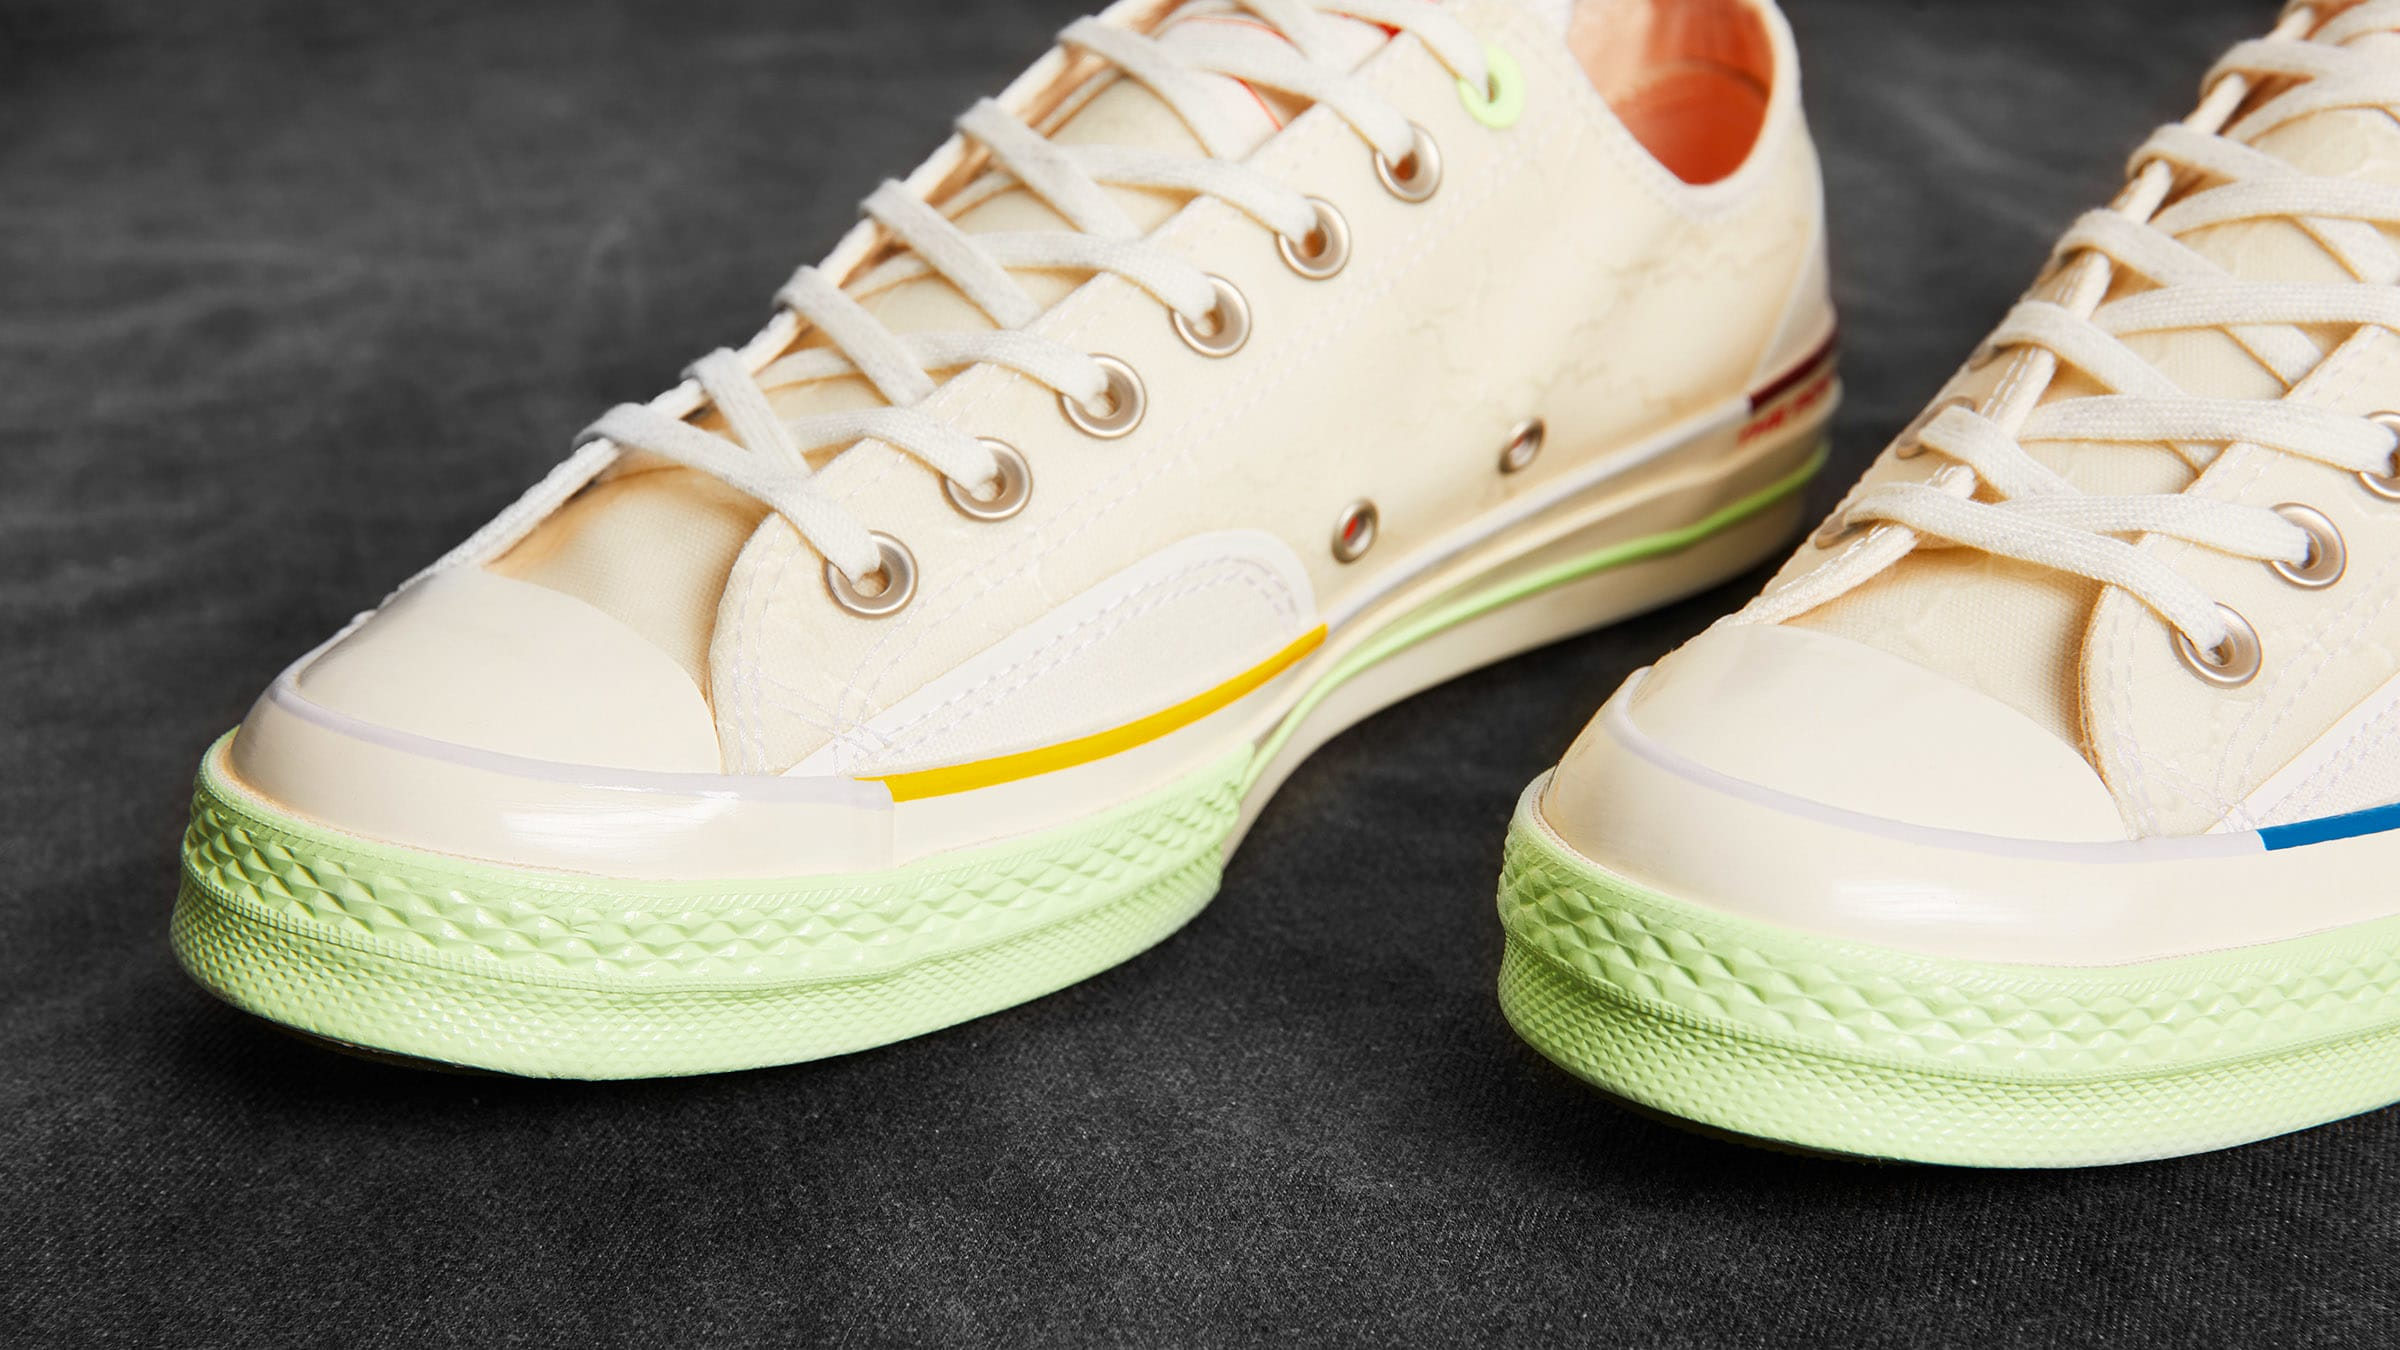 Converse x Pigalle Chuck Taylor All Star 70 OX in White